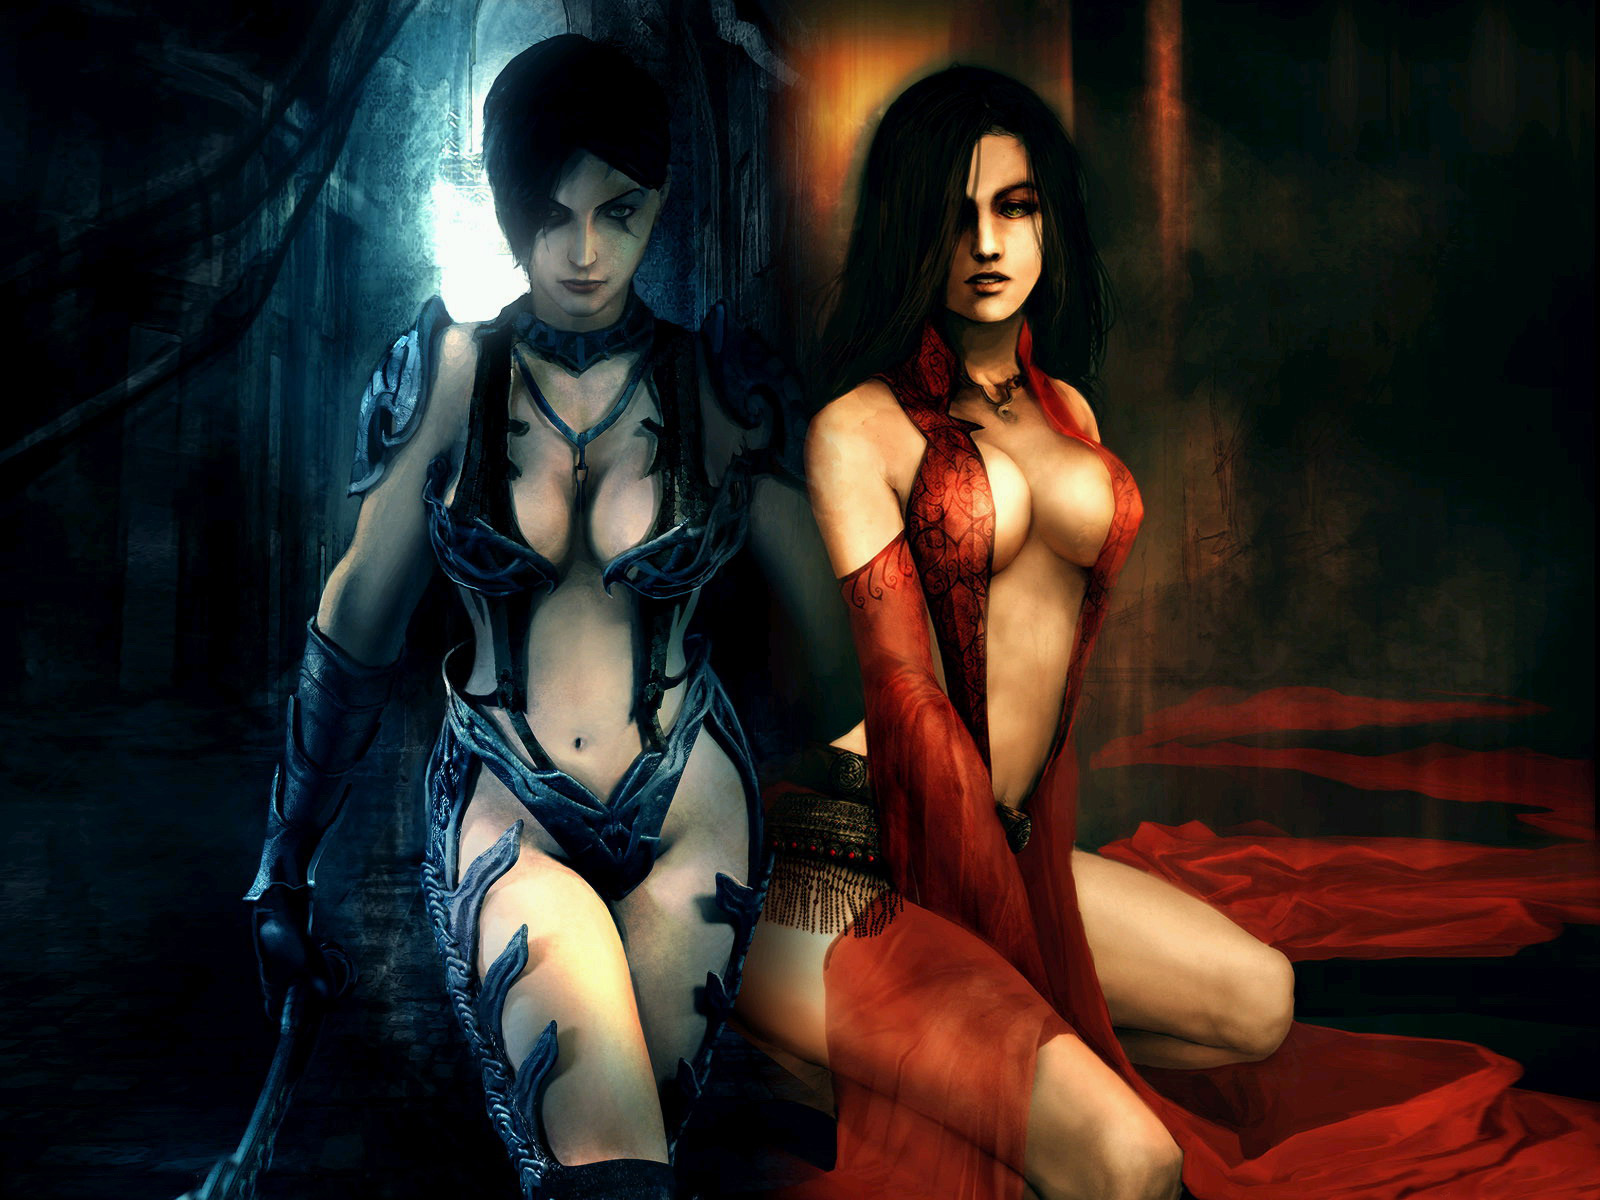 Prince of persia warrior within in sex  sex images